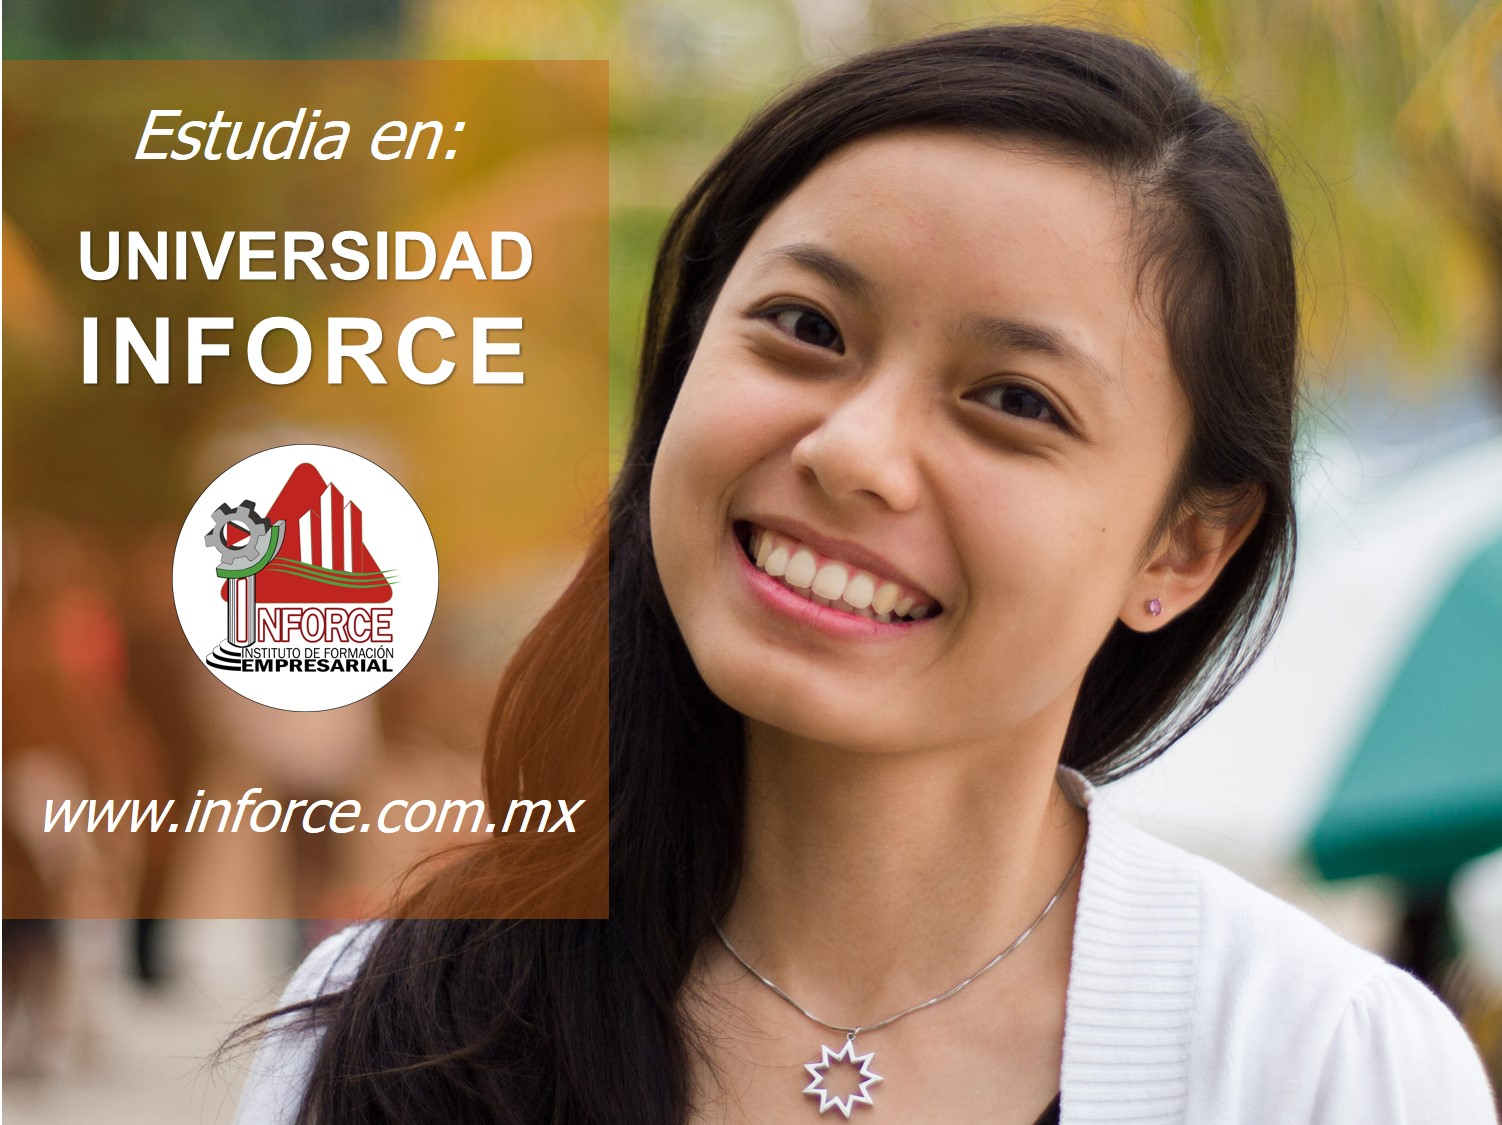 universidad-inforce-4.jpg